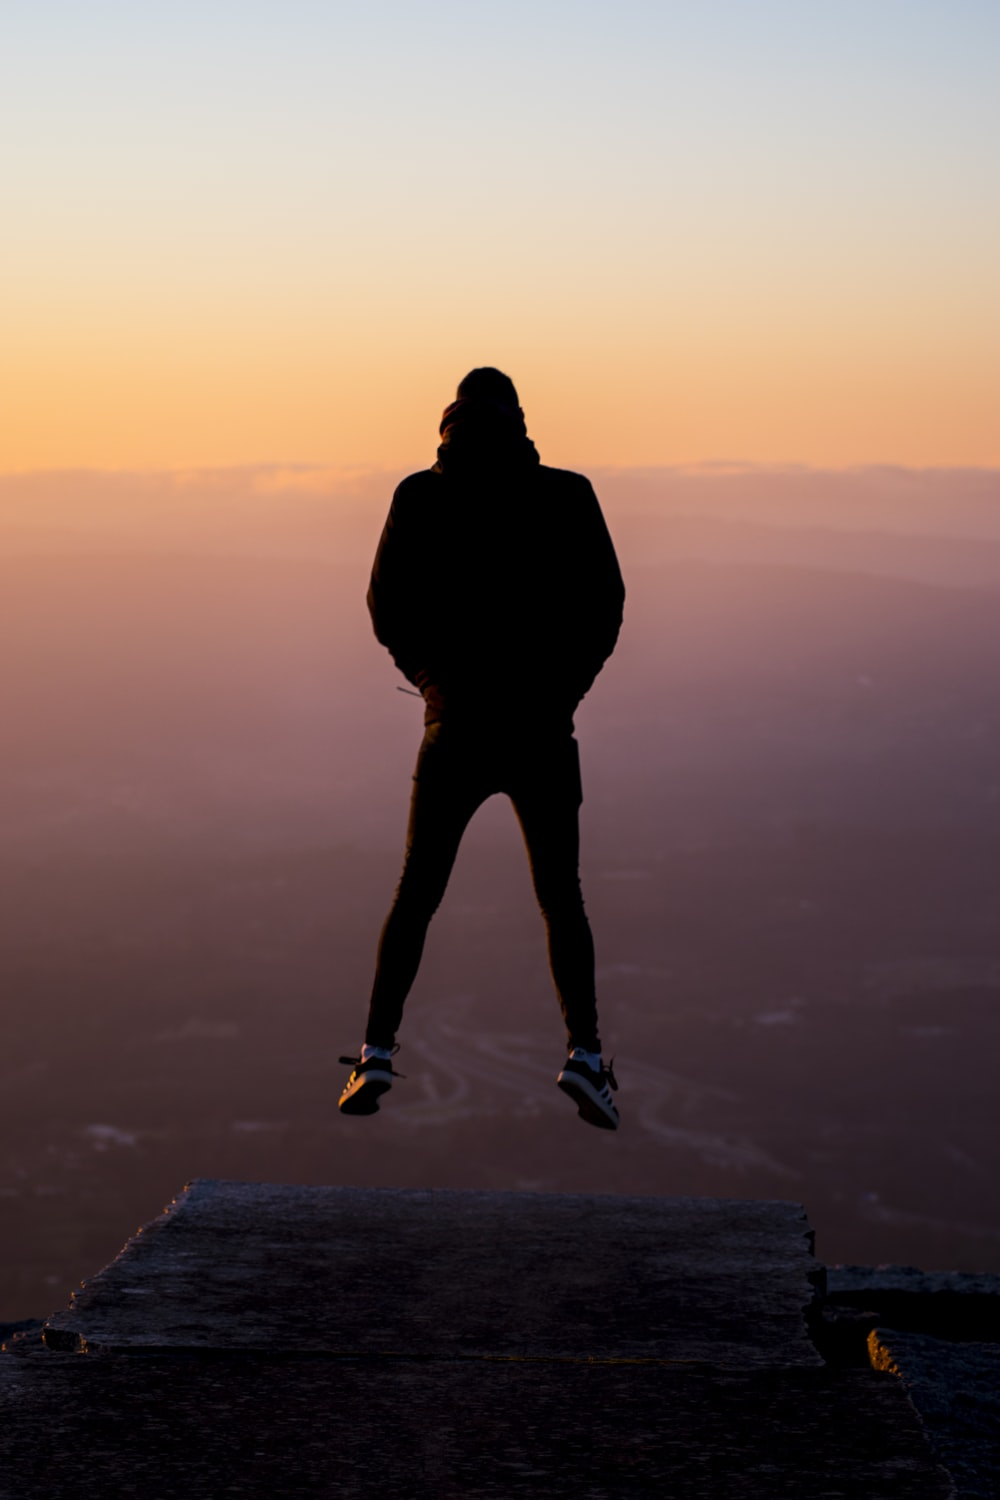 silhouette photography of person jumping